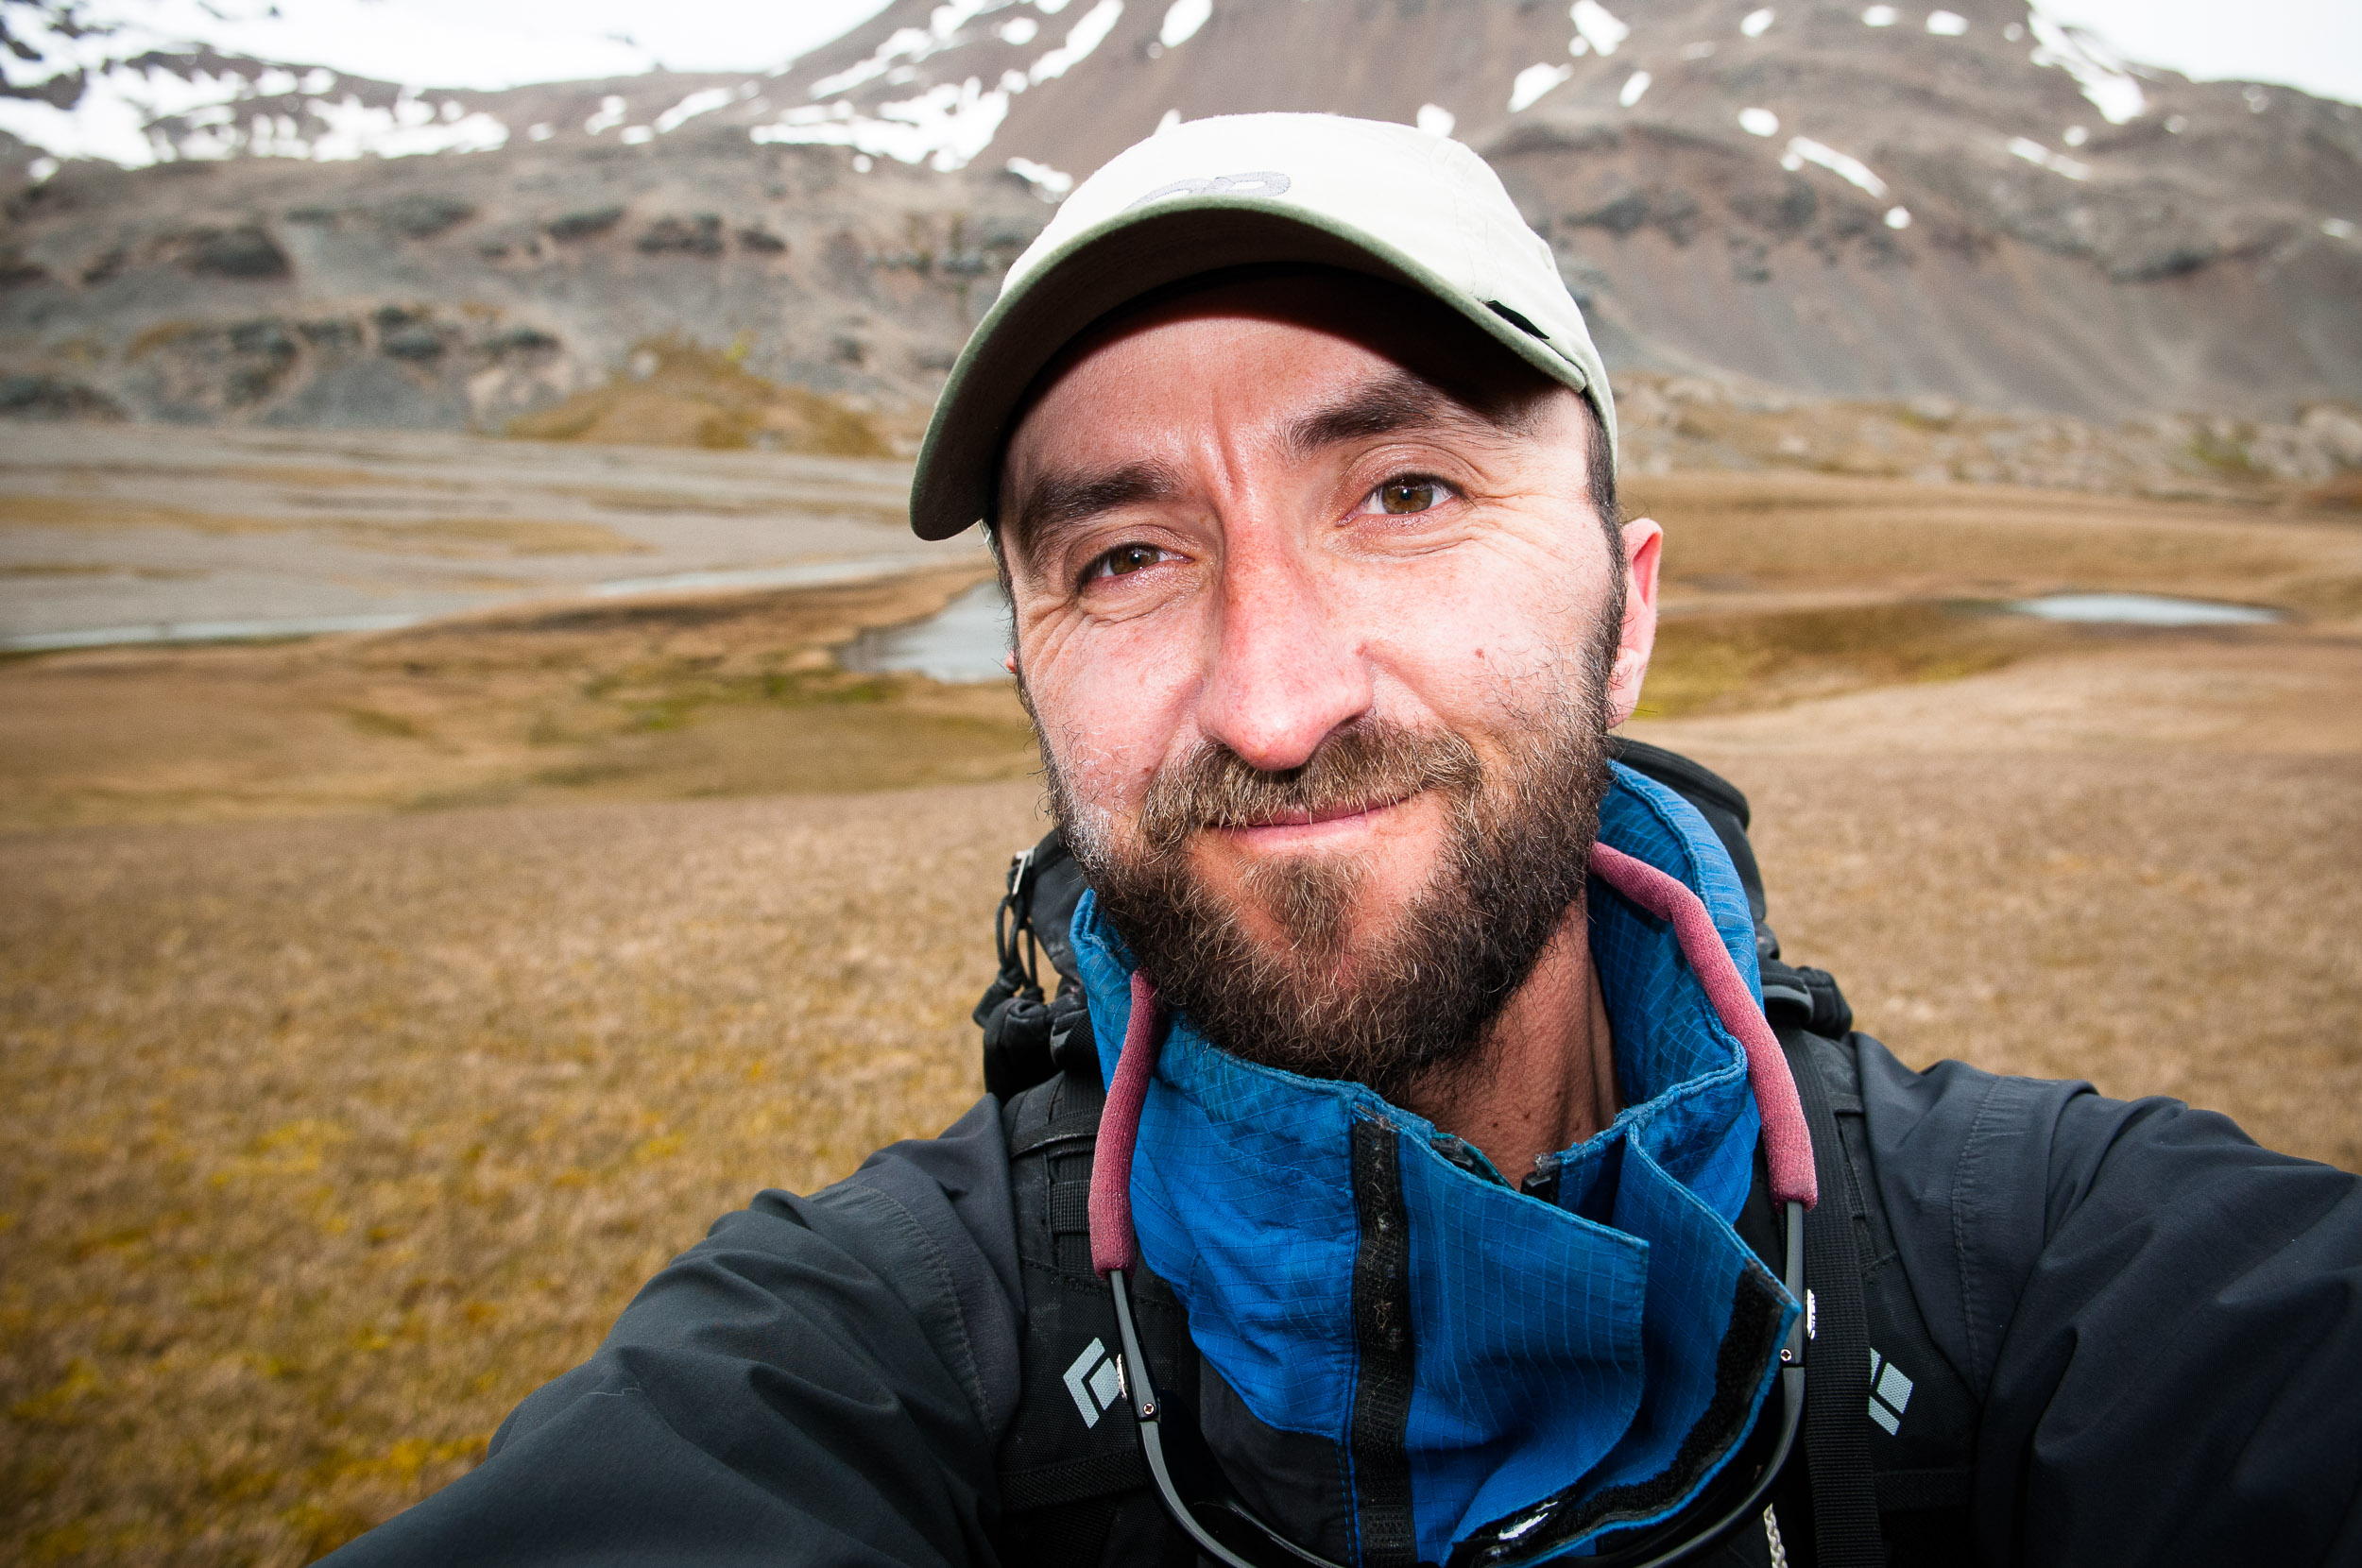 Selfie, while working in South Georgia with Quark Expeditions.